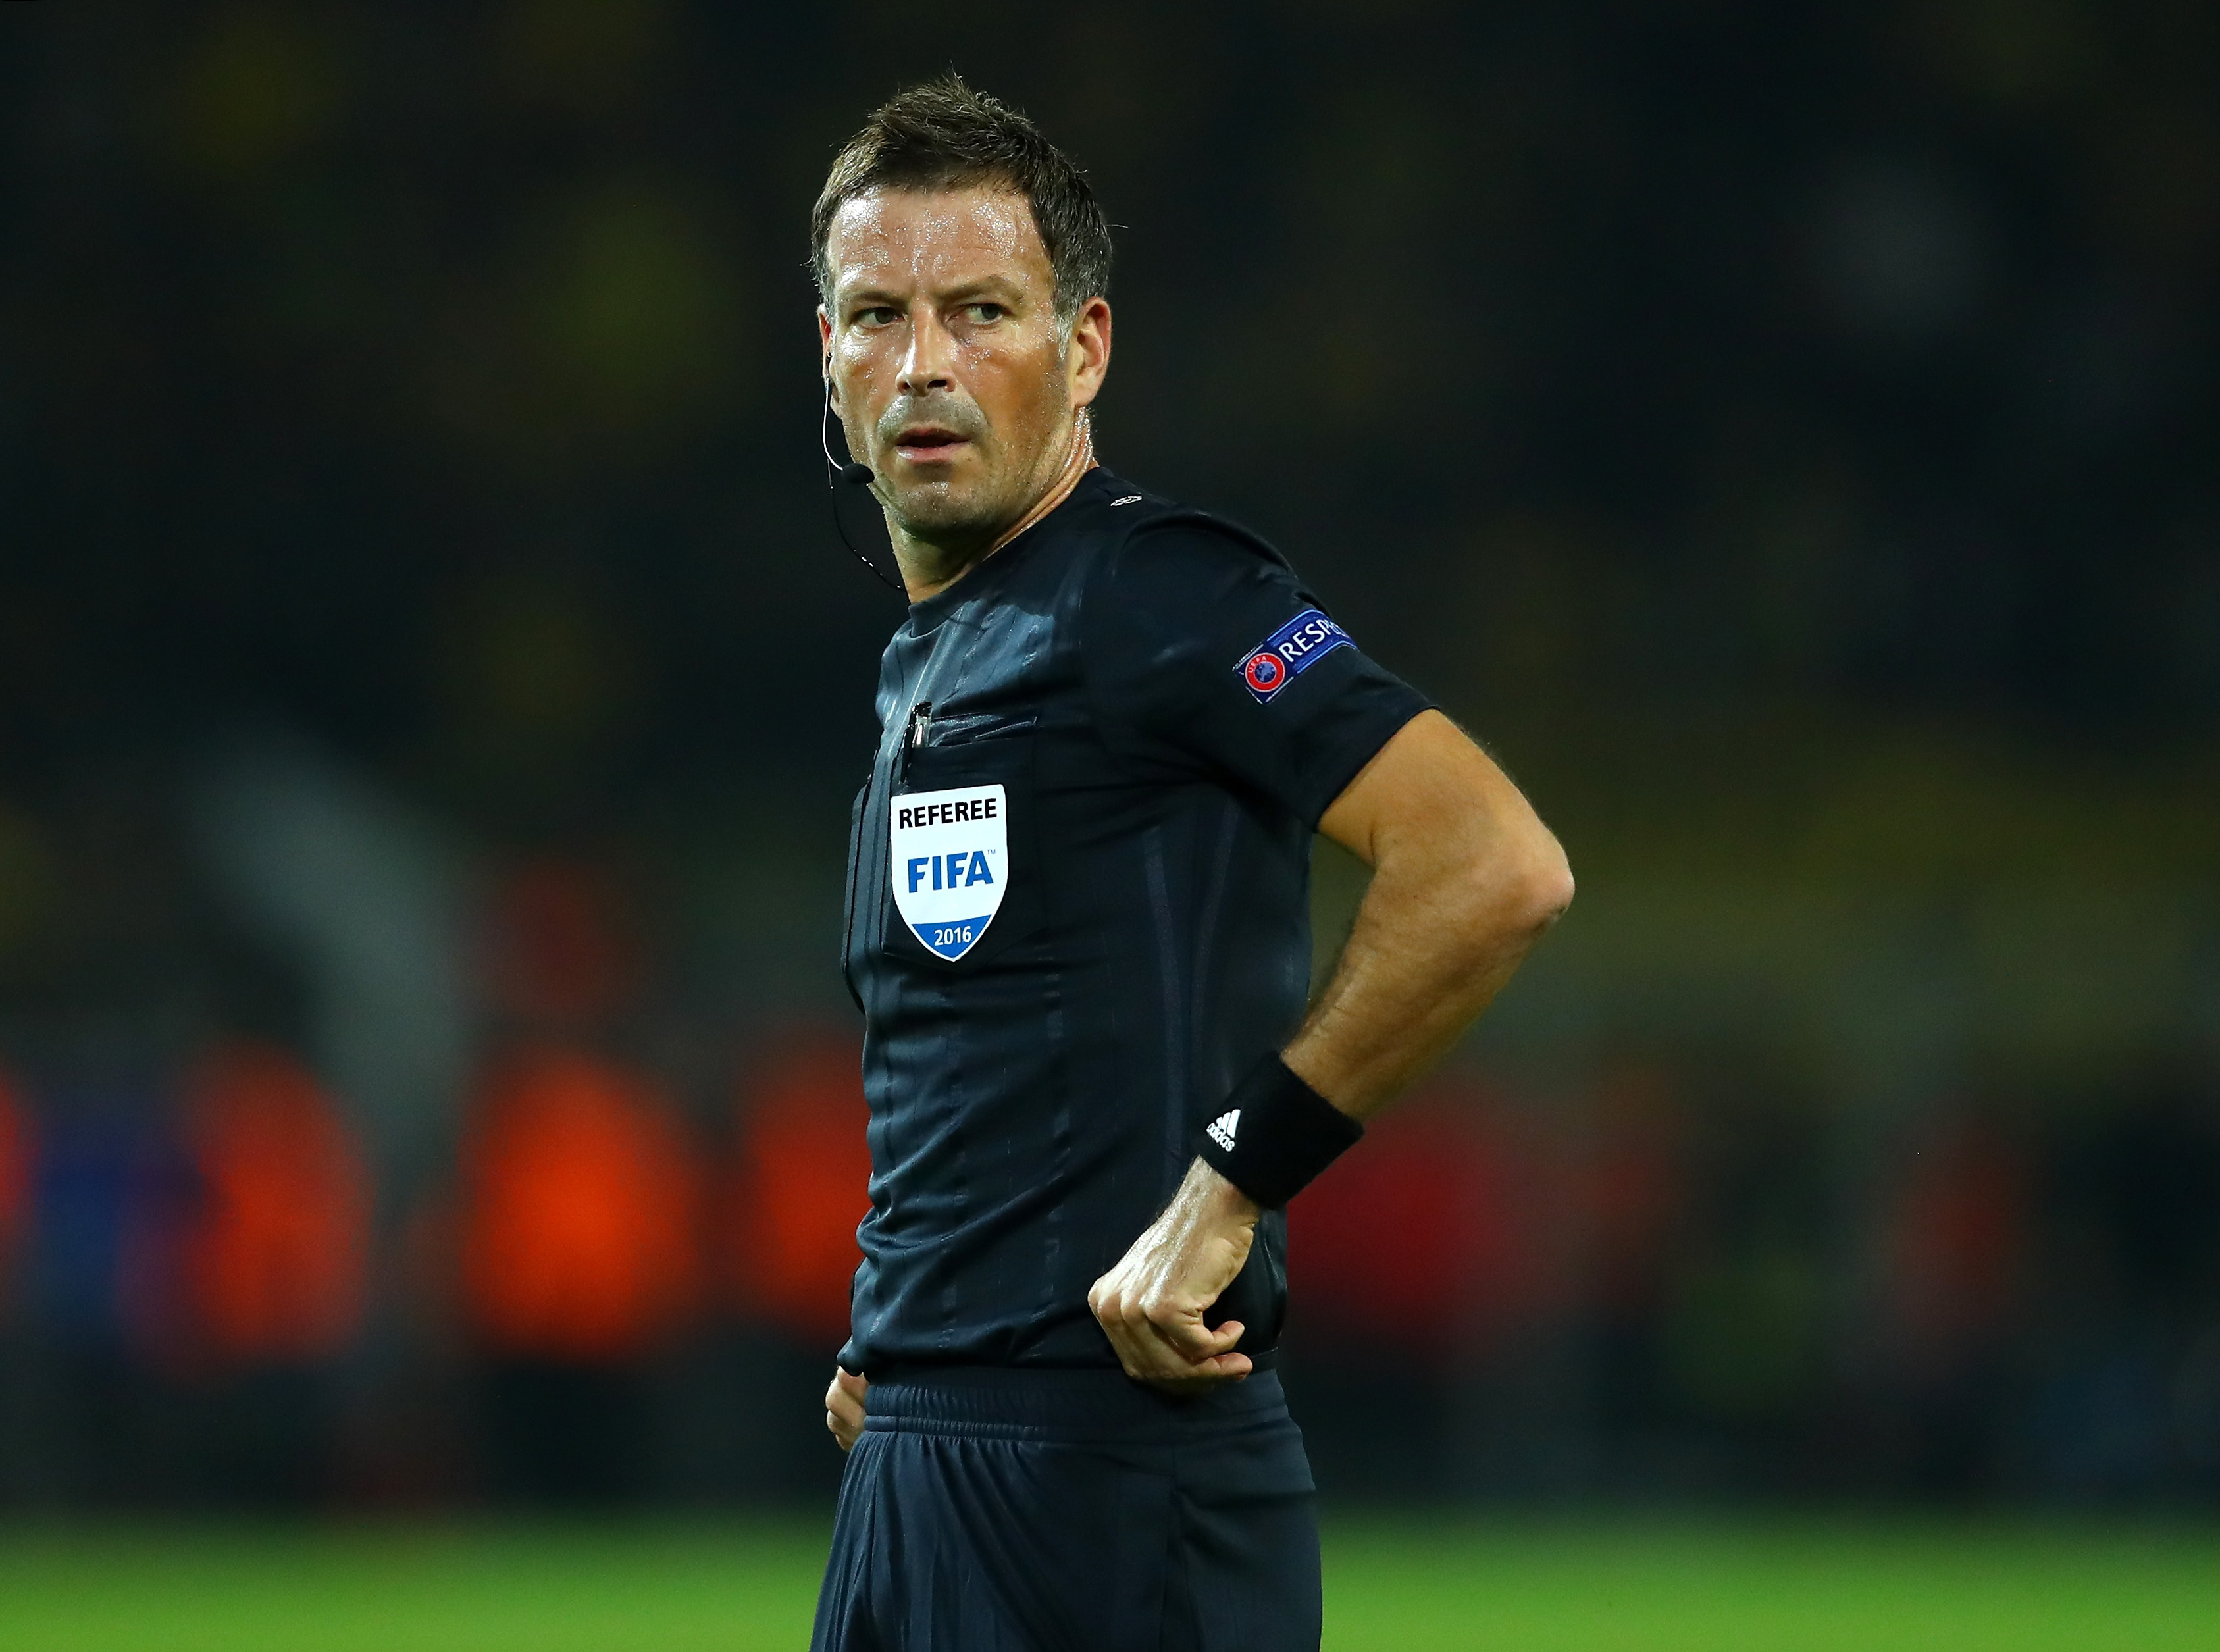 DORTMUND, GERMANY - SEPTEMBER 27:  Referee Mark Clattenburg looks on during the UEFA Champions League Group F match between Borussia Dortmund and Real Madrid CF at Signal Iduna Park on September 27, 2016 in Dortmund, North Rhine-Westphalia.  (Photo by Dean Mouhtaropoulos/Bongarts/Getty Images)